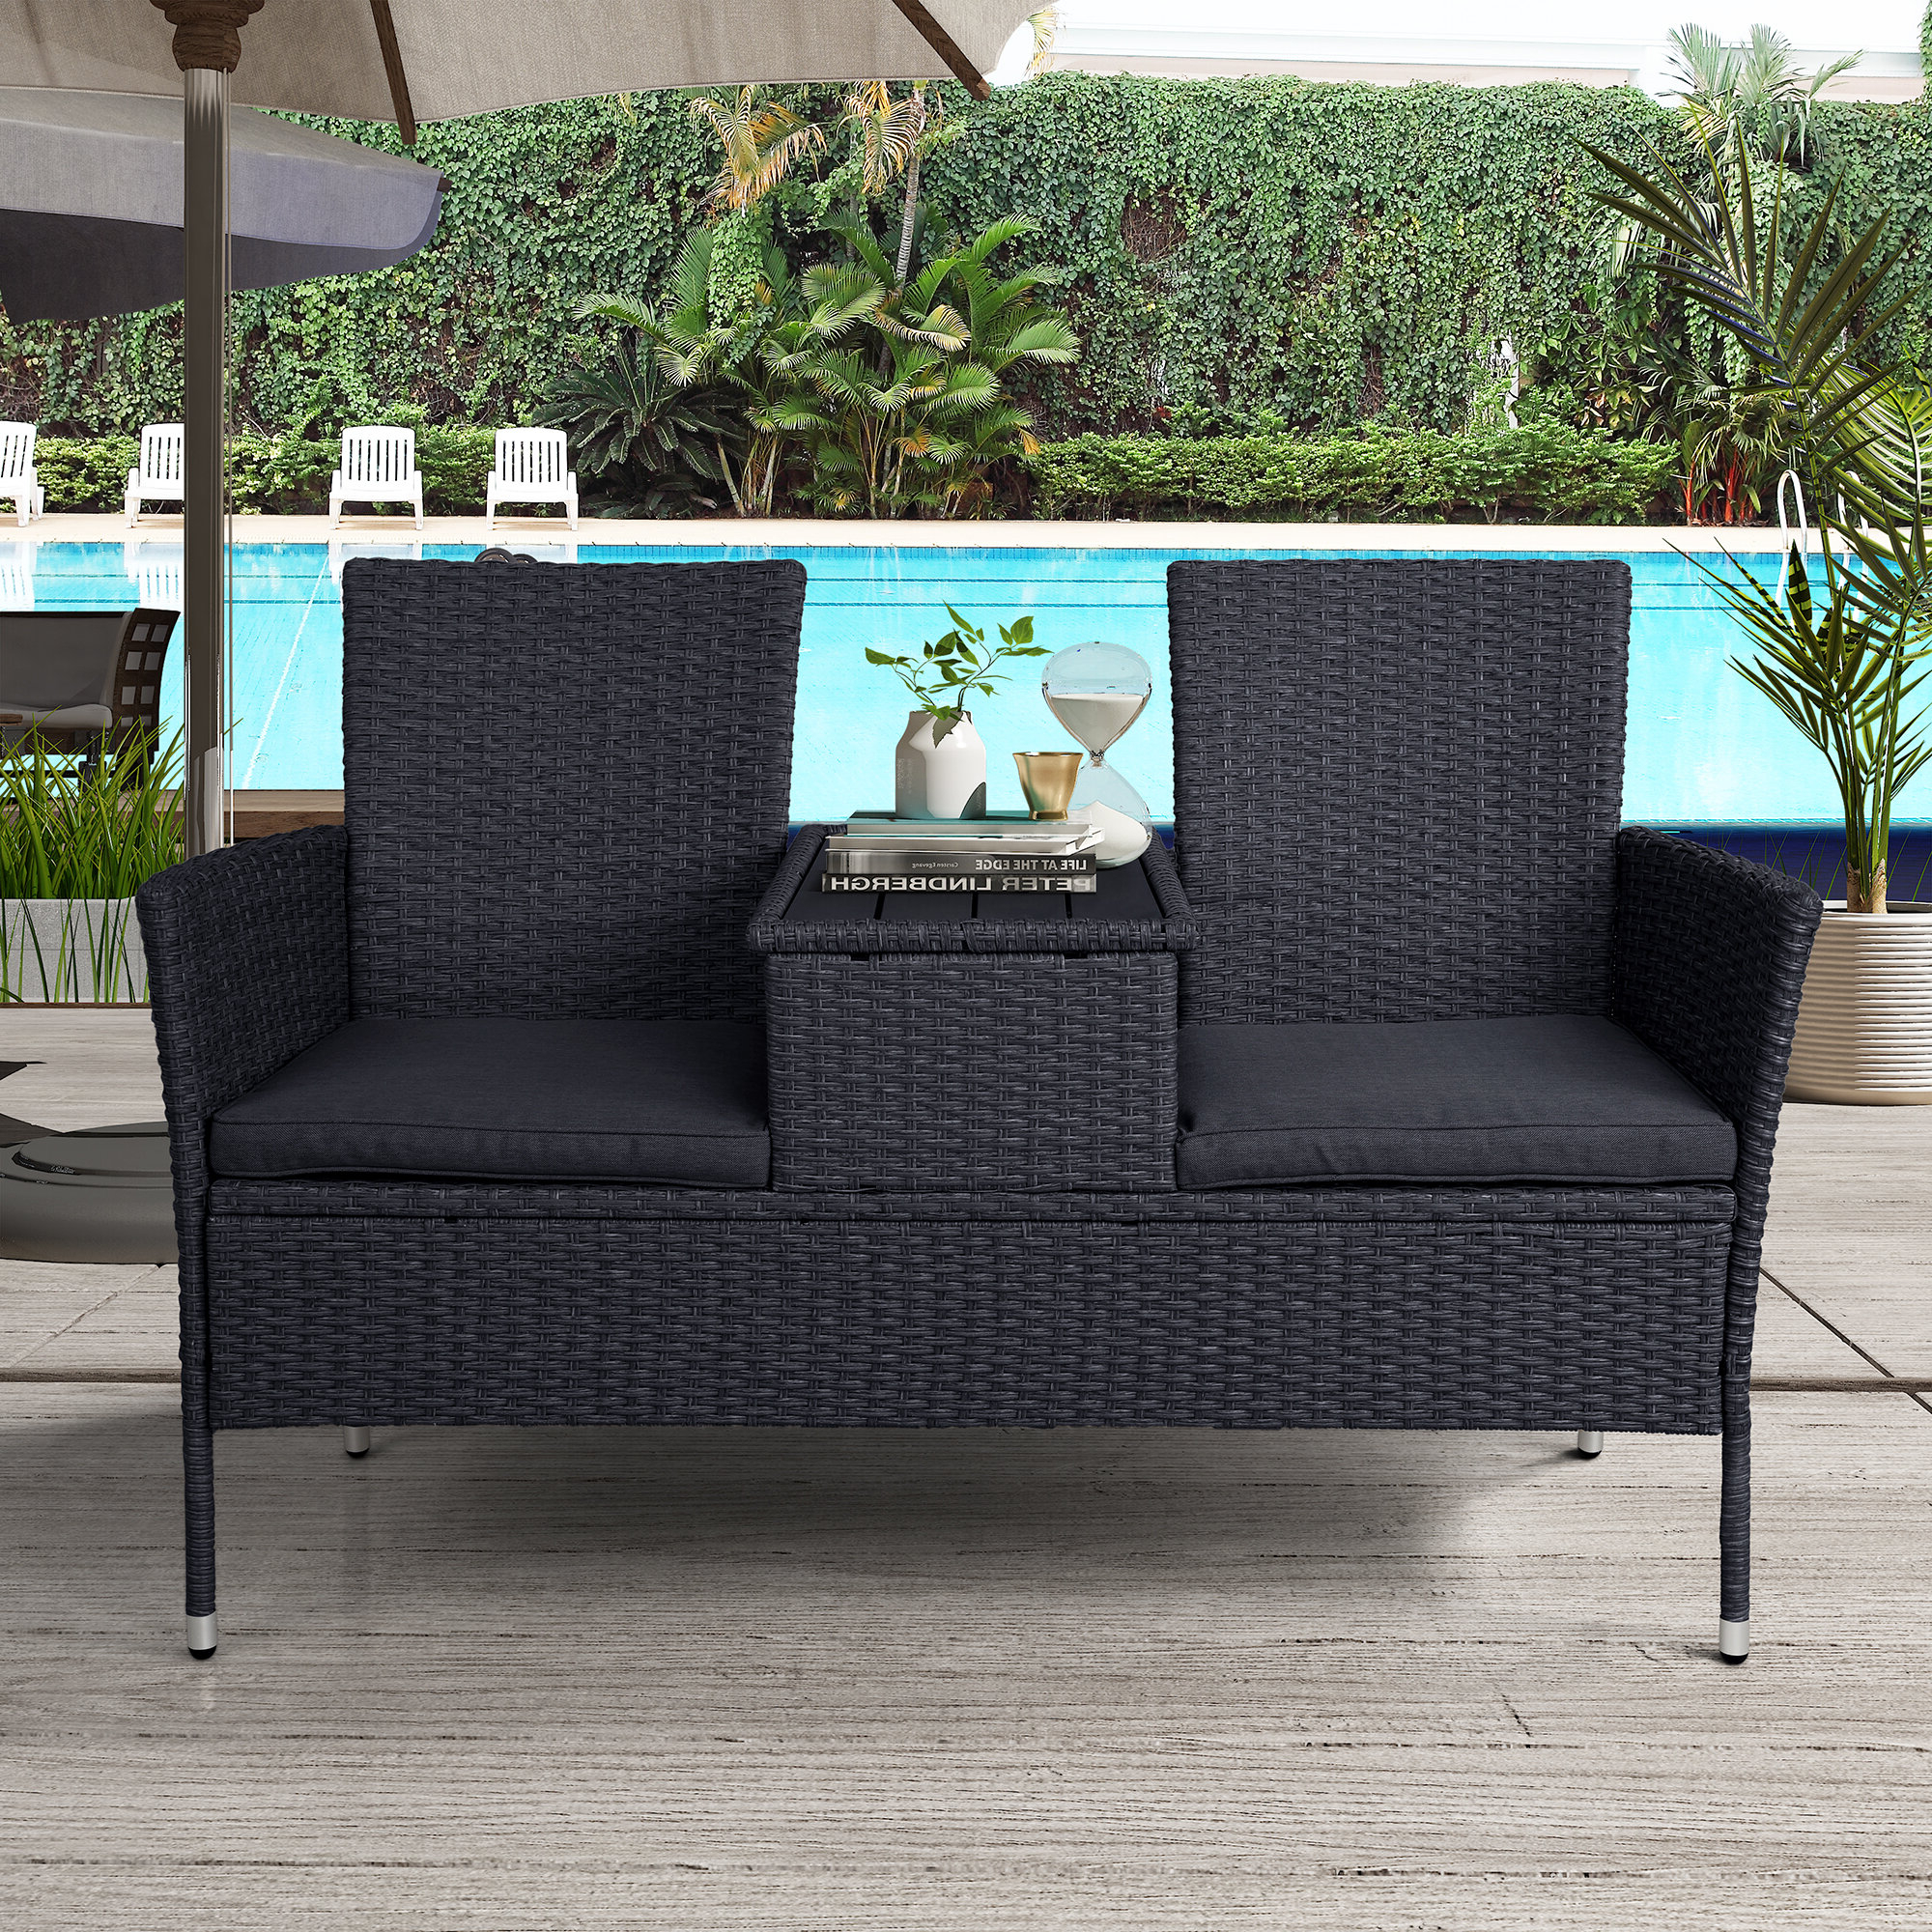 Newest Menoher Outdoor Loveseat With Cushions With Furst Outdoor Loveseats With Cushions (View 8 of 25)